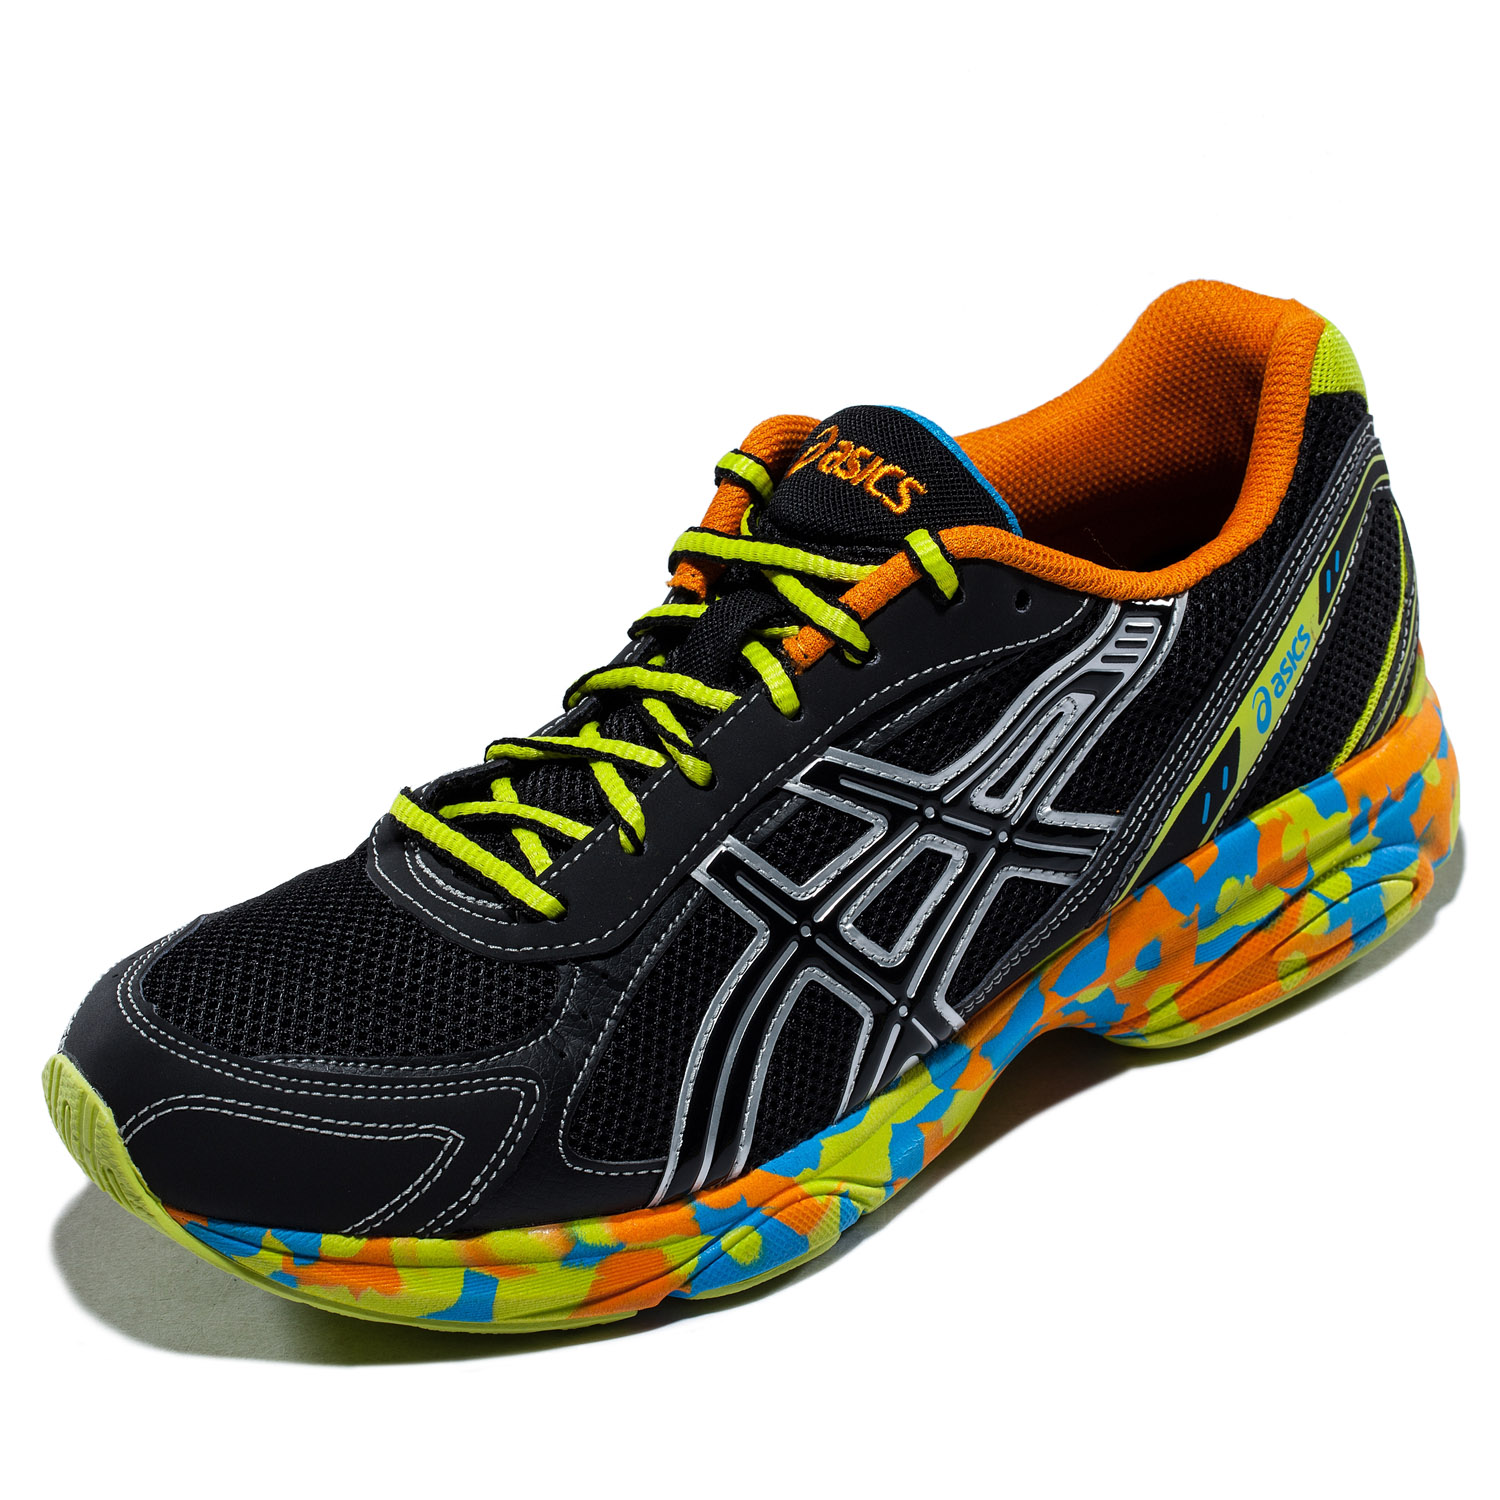 asics sneakers running shoes cushion running shoes MAVERICK